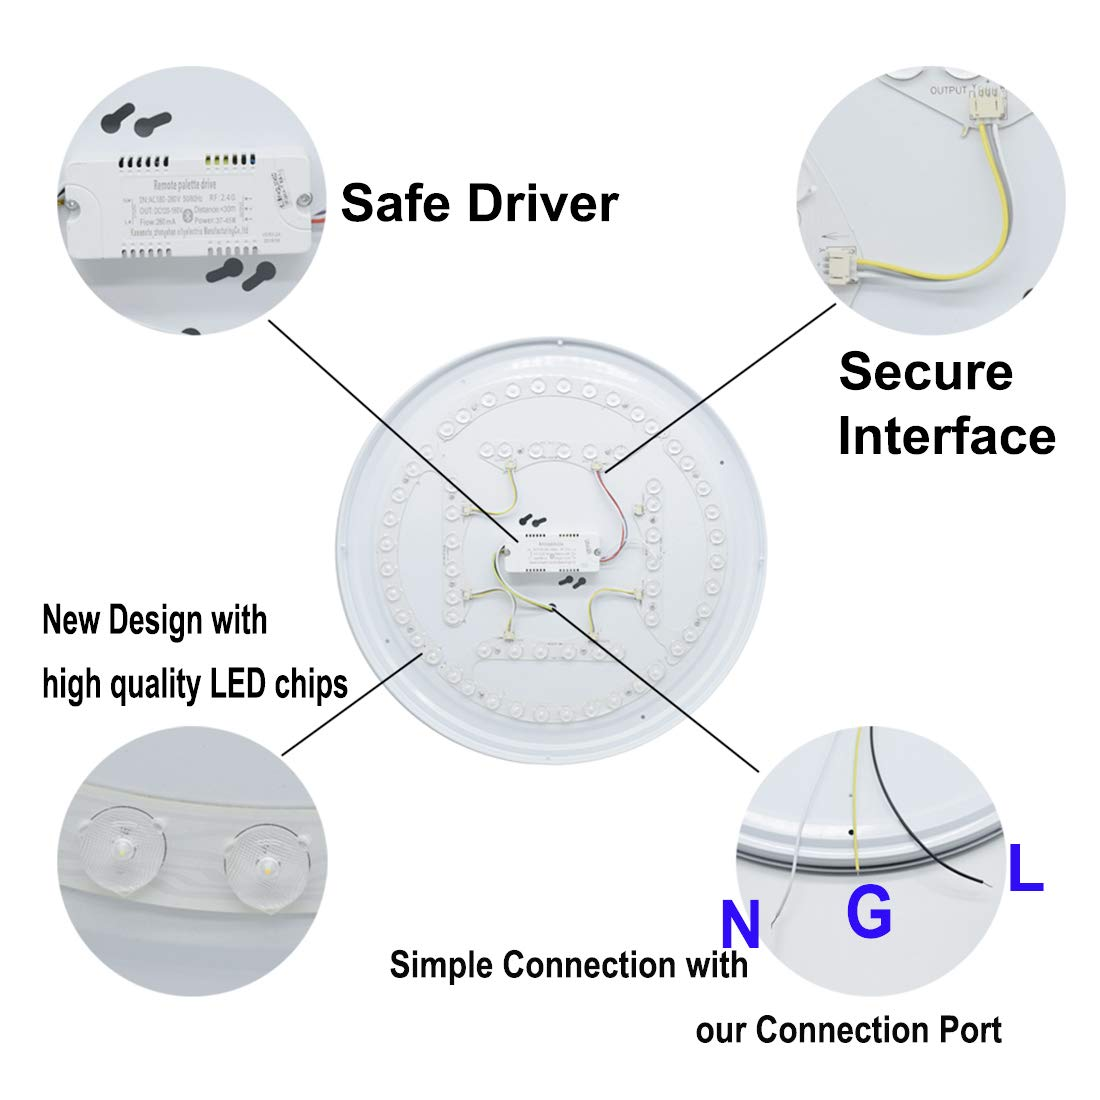 DLLT 48W Dimmable Led Flush Mount Ceiling Light Lighting with Remote-20 Inch Close to Ceiling Lights Fixture for Bedroom/Living Room/Dining Room, 3000K-6000K Color Changeable by DINGLILIGHTING (Image #4)